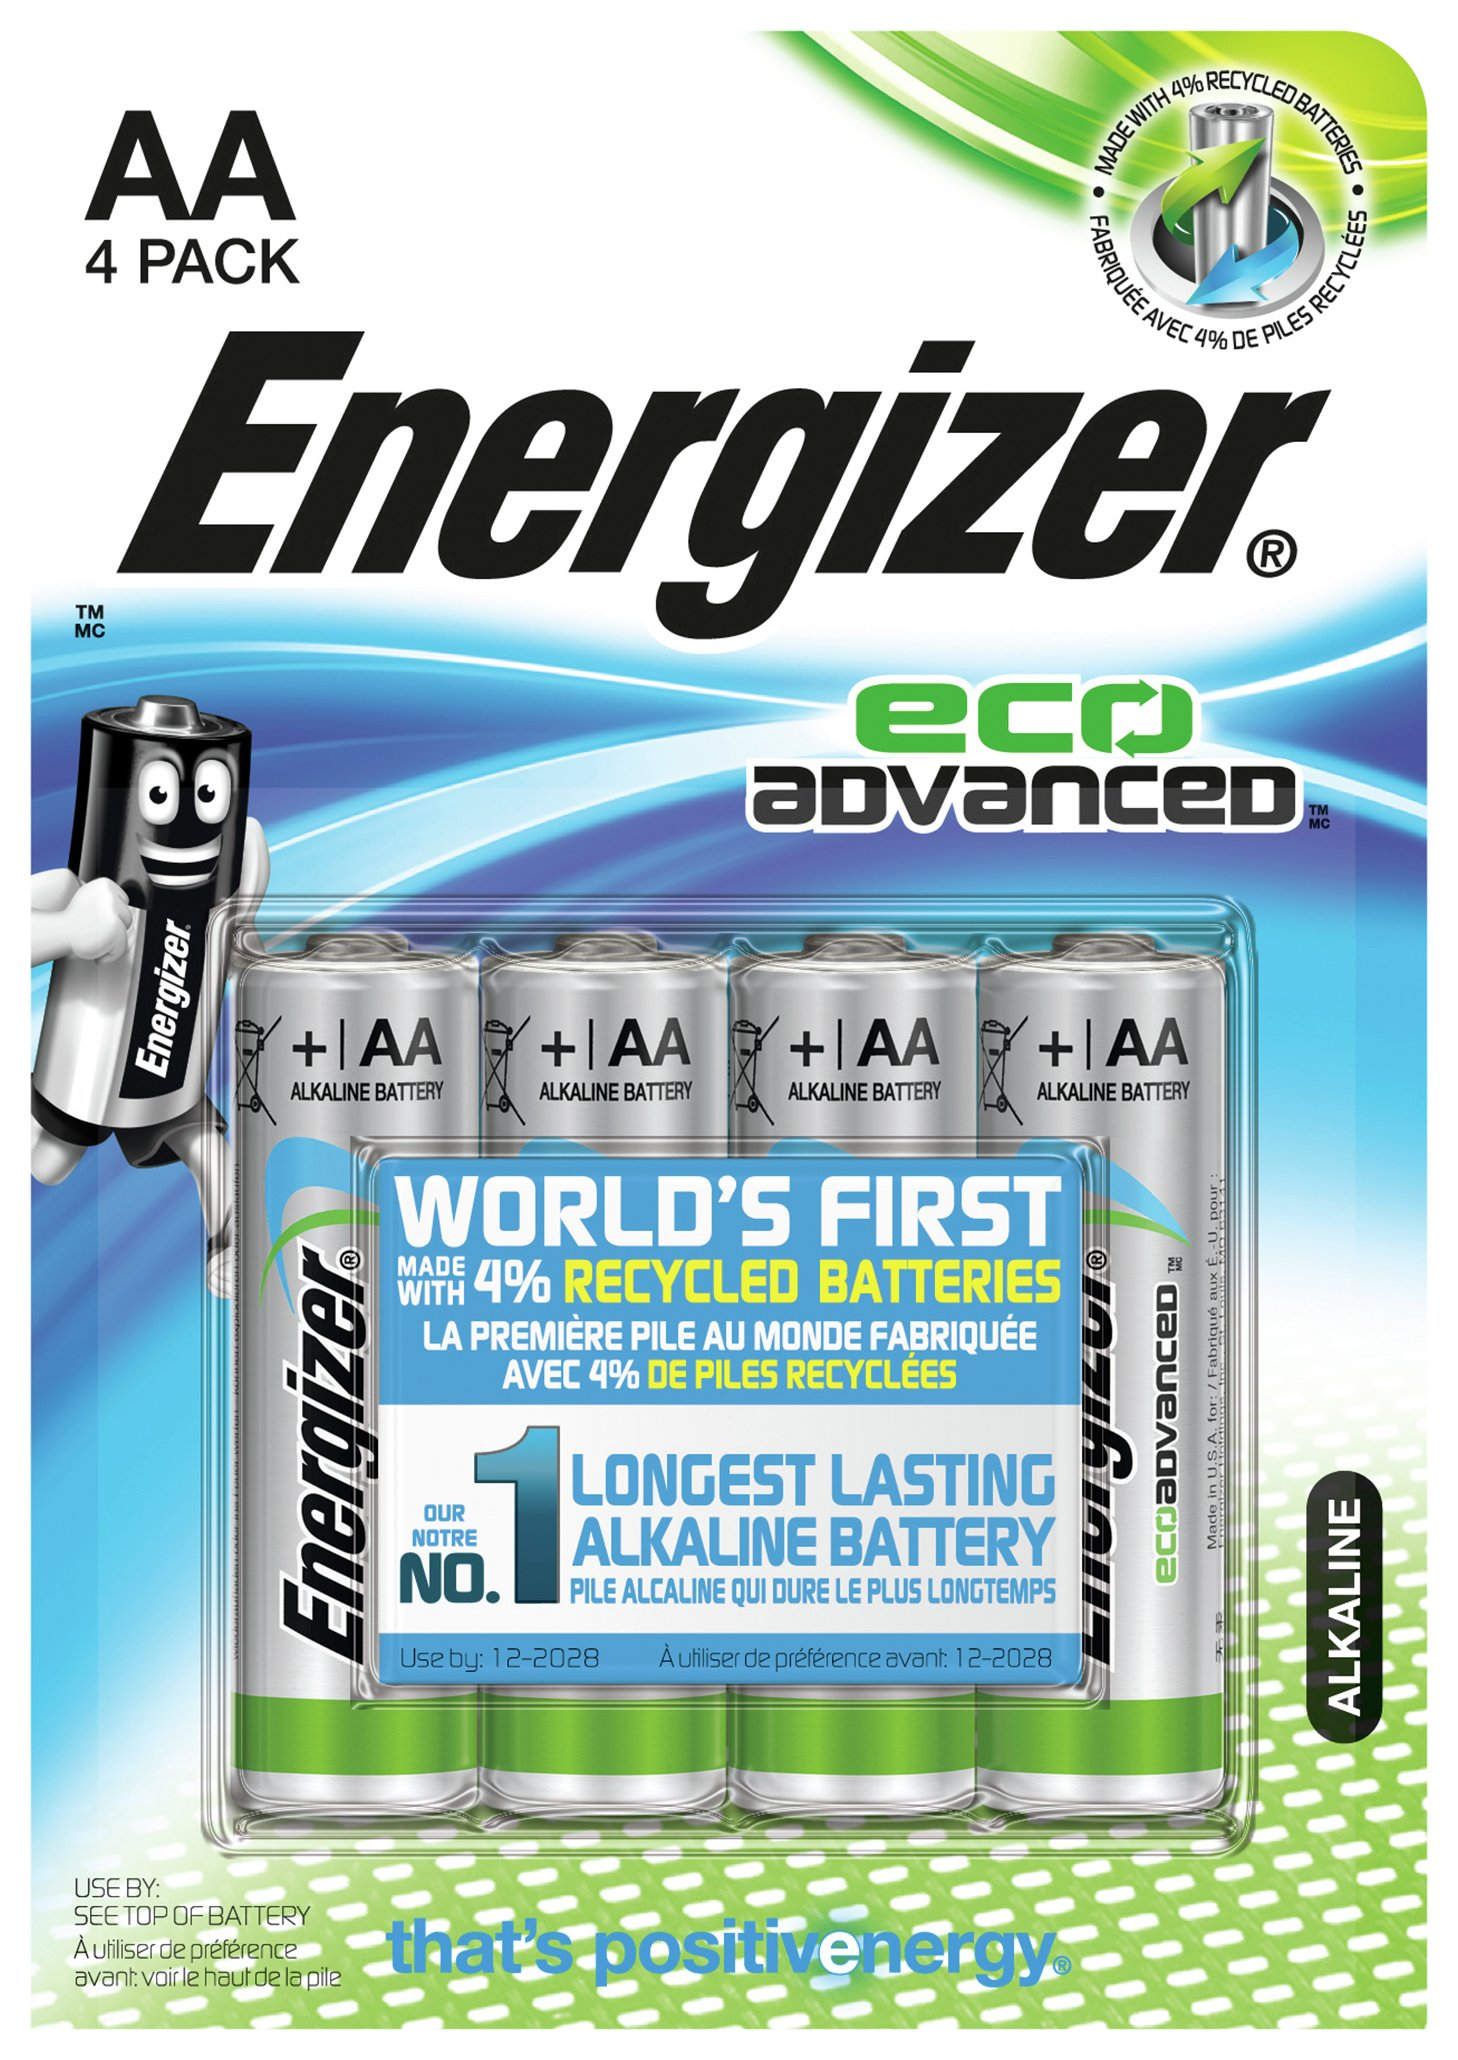 history of energizer batteries